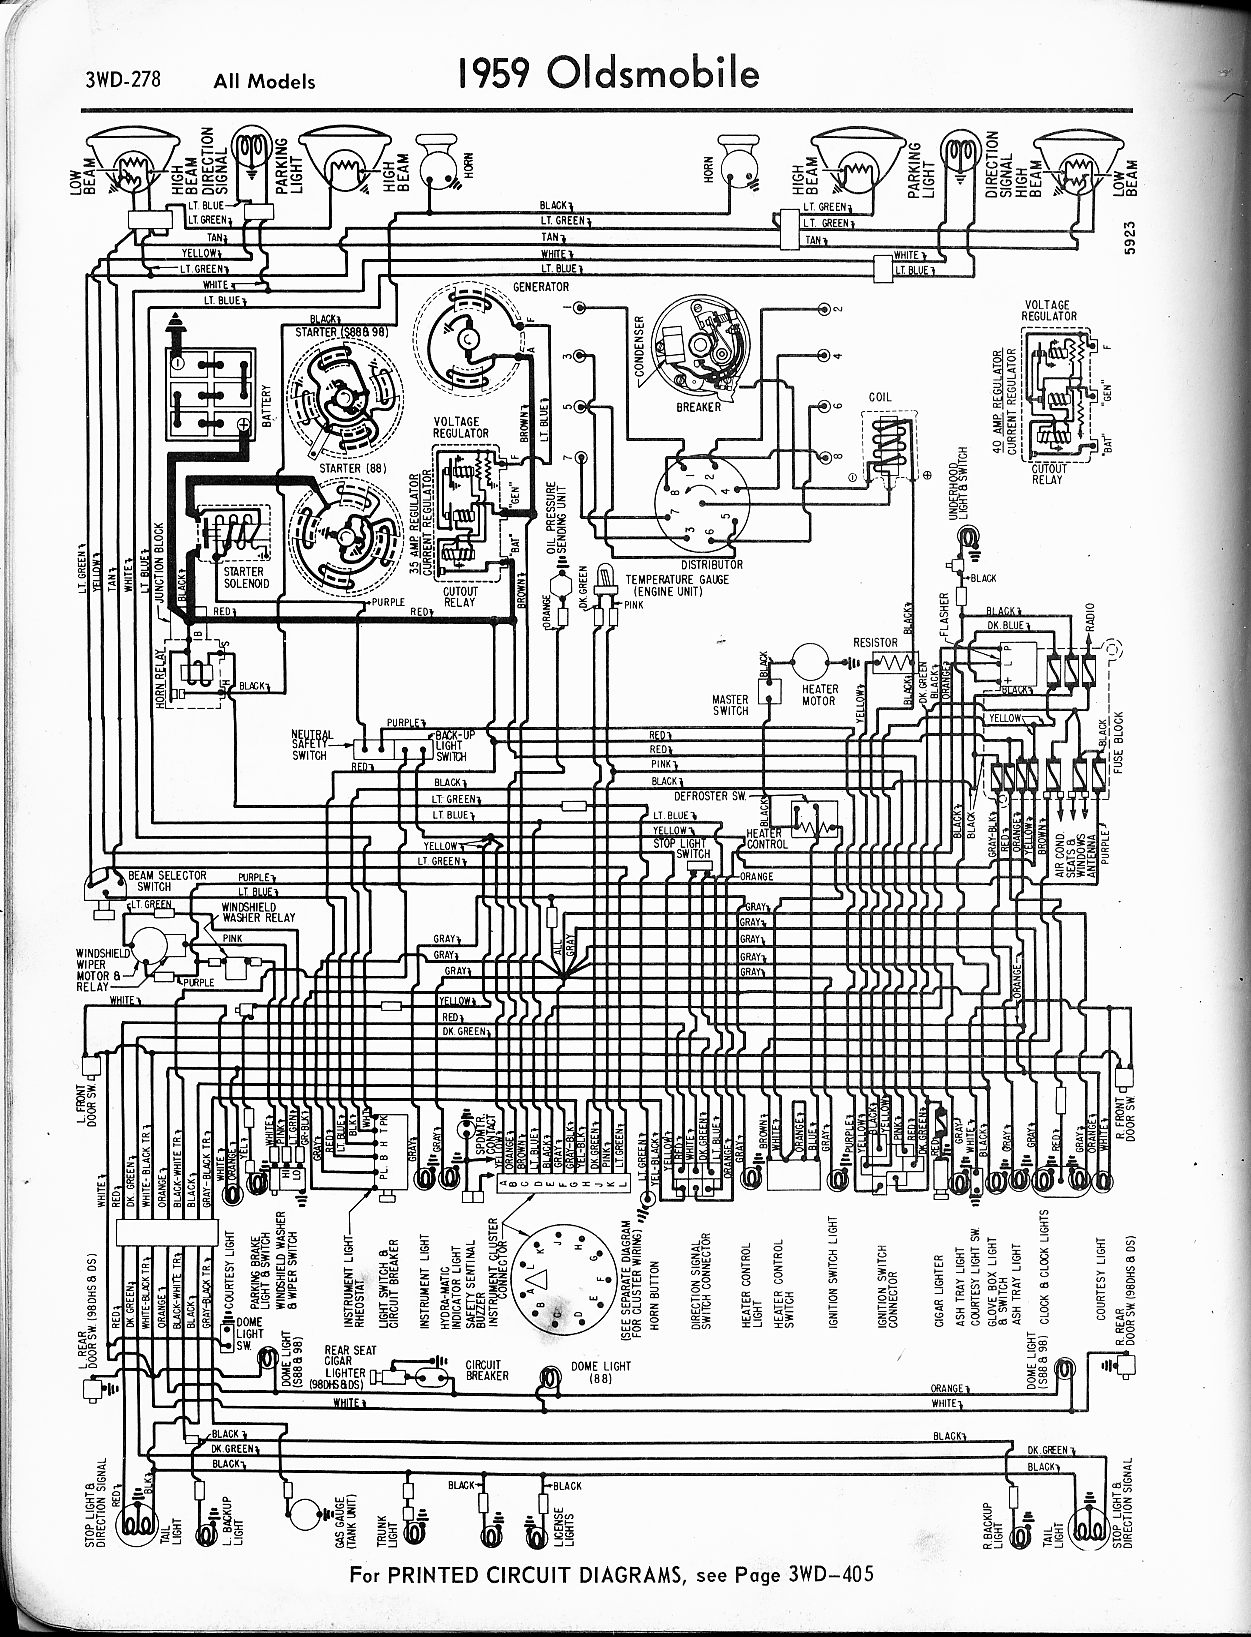 MWire5765 278 oldsmobile wiring diagrams the old car manual project  at fashall.co